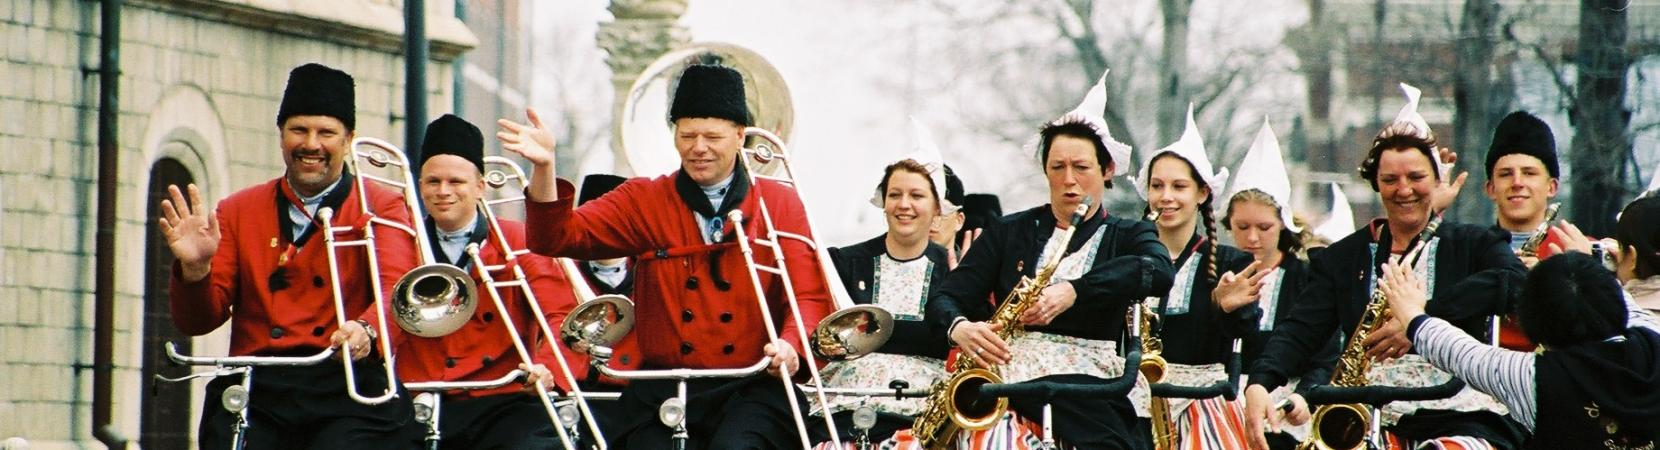 Nieuwjaarsconcert Bicycle Showband Crescendo